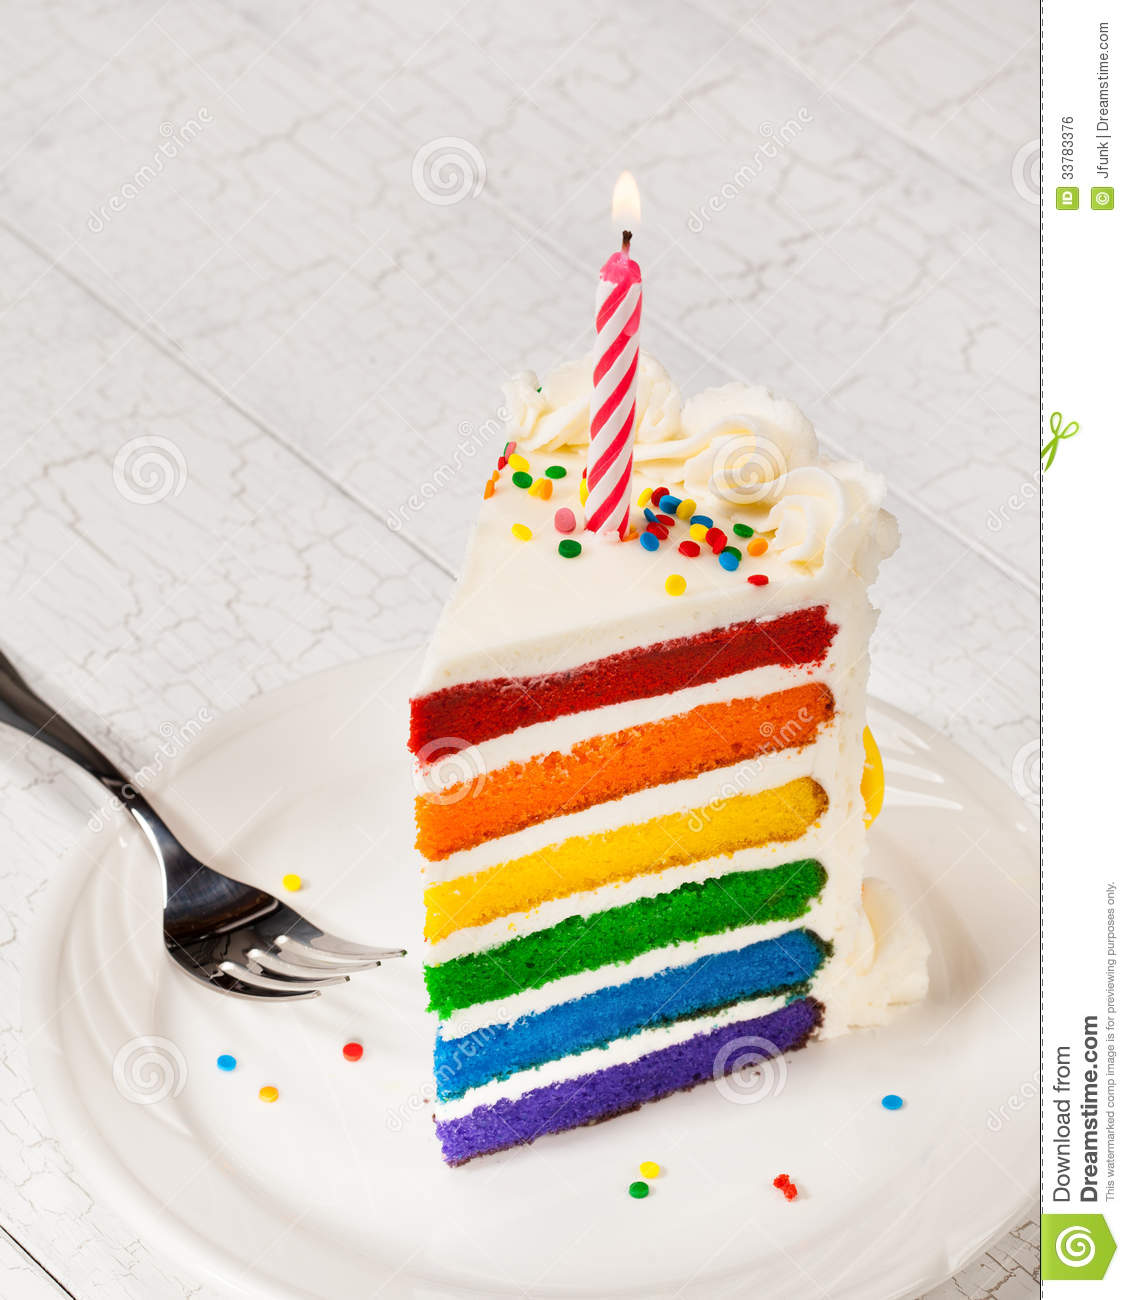 Slice Of Colourful Rainbow Layered Birthday Cake Decorated With Sprinkles Buttercream Icing And Lit Candle Copy Space For Your Text